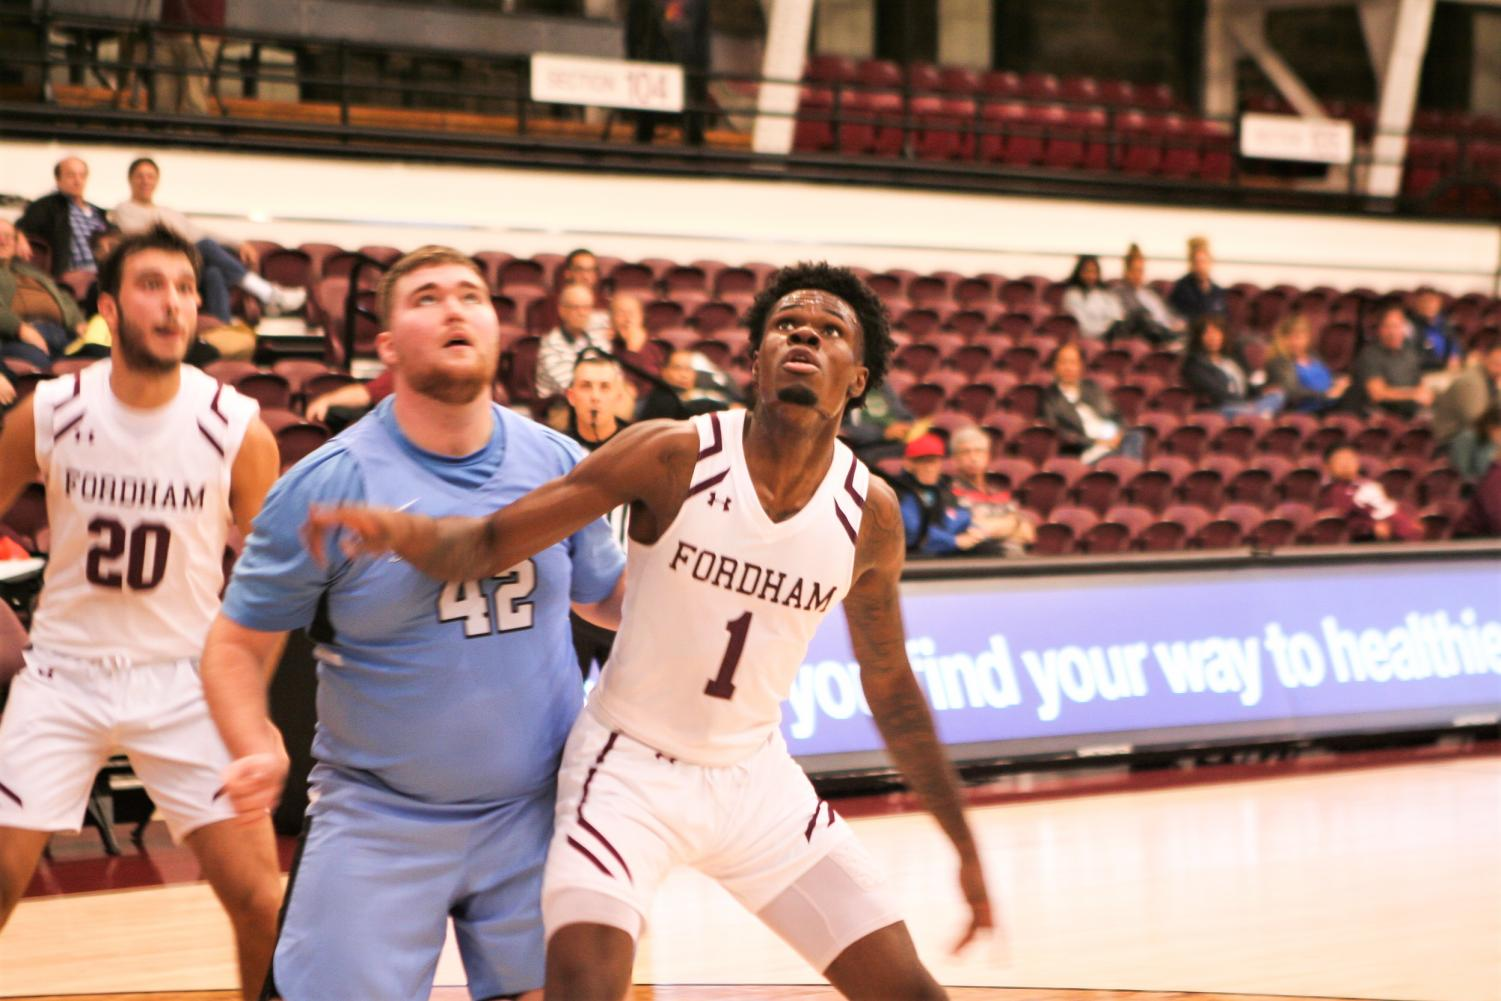 Chuba O'Hams (above) led the way for Fordham with a double-double on Tuesday night. (Alex Wolz/The Fordham Ram)